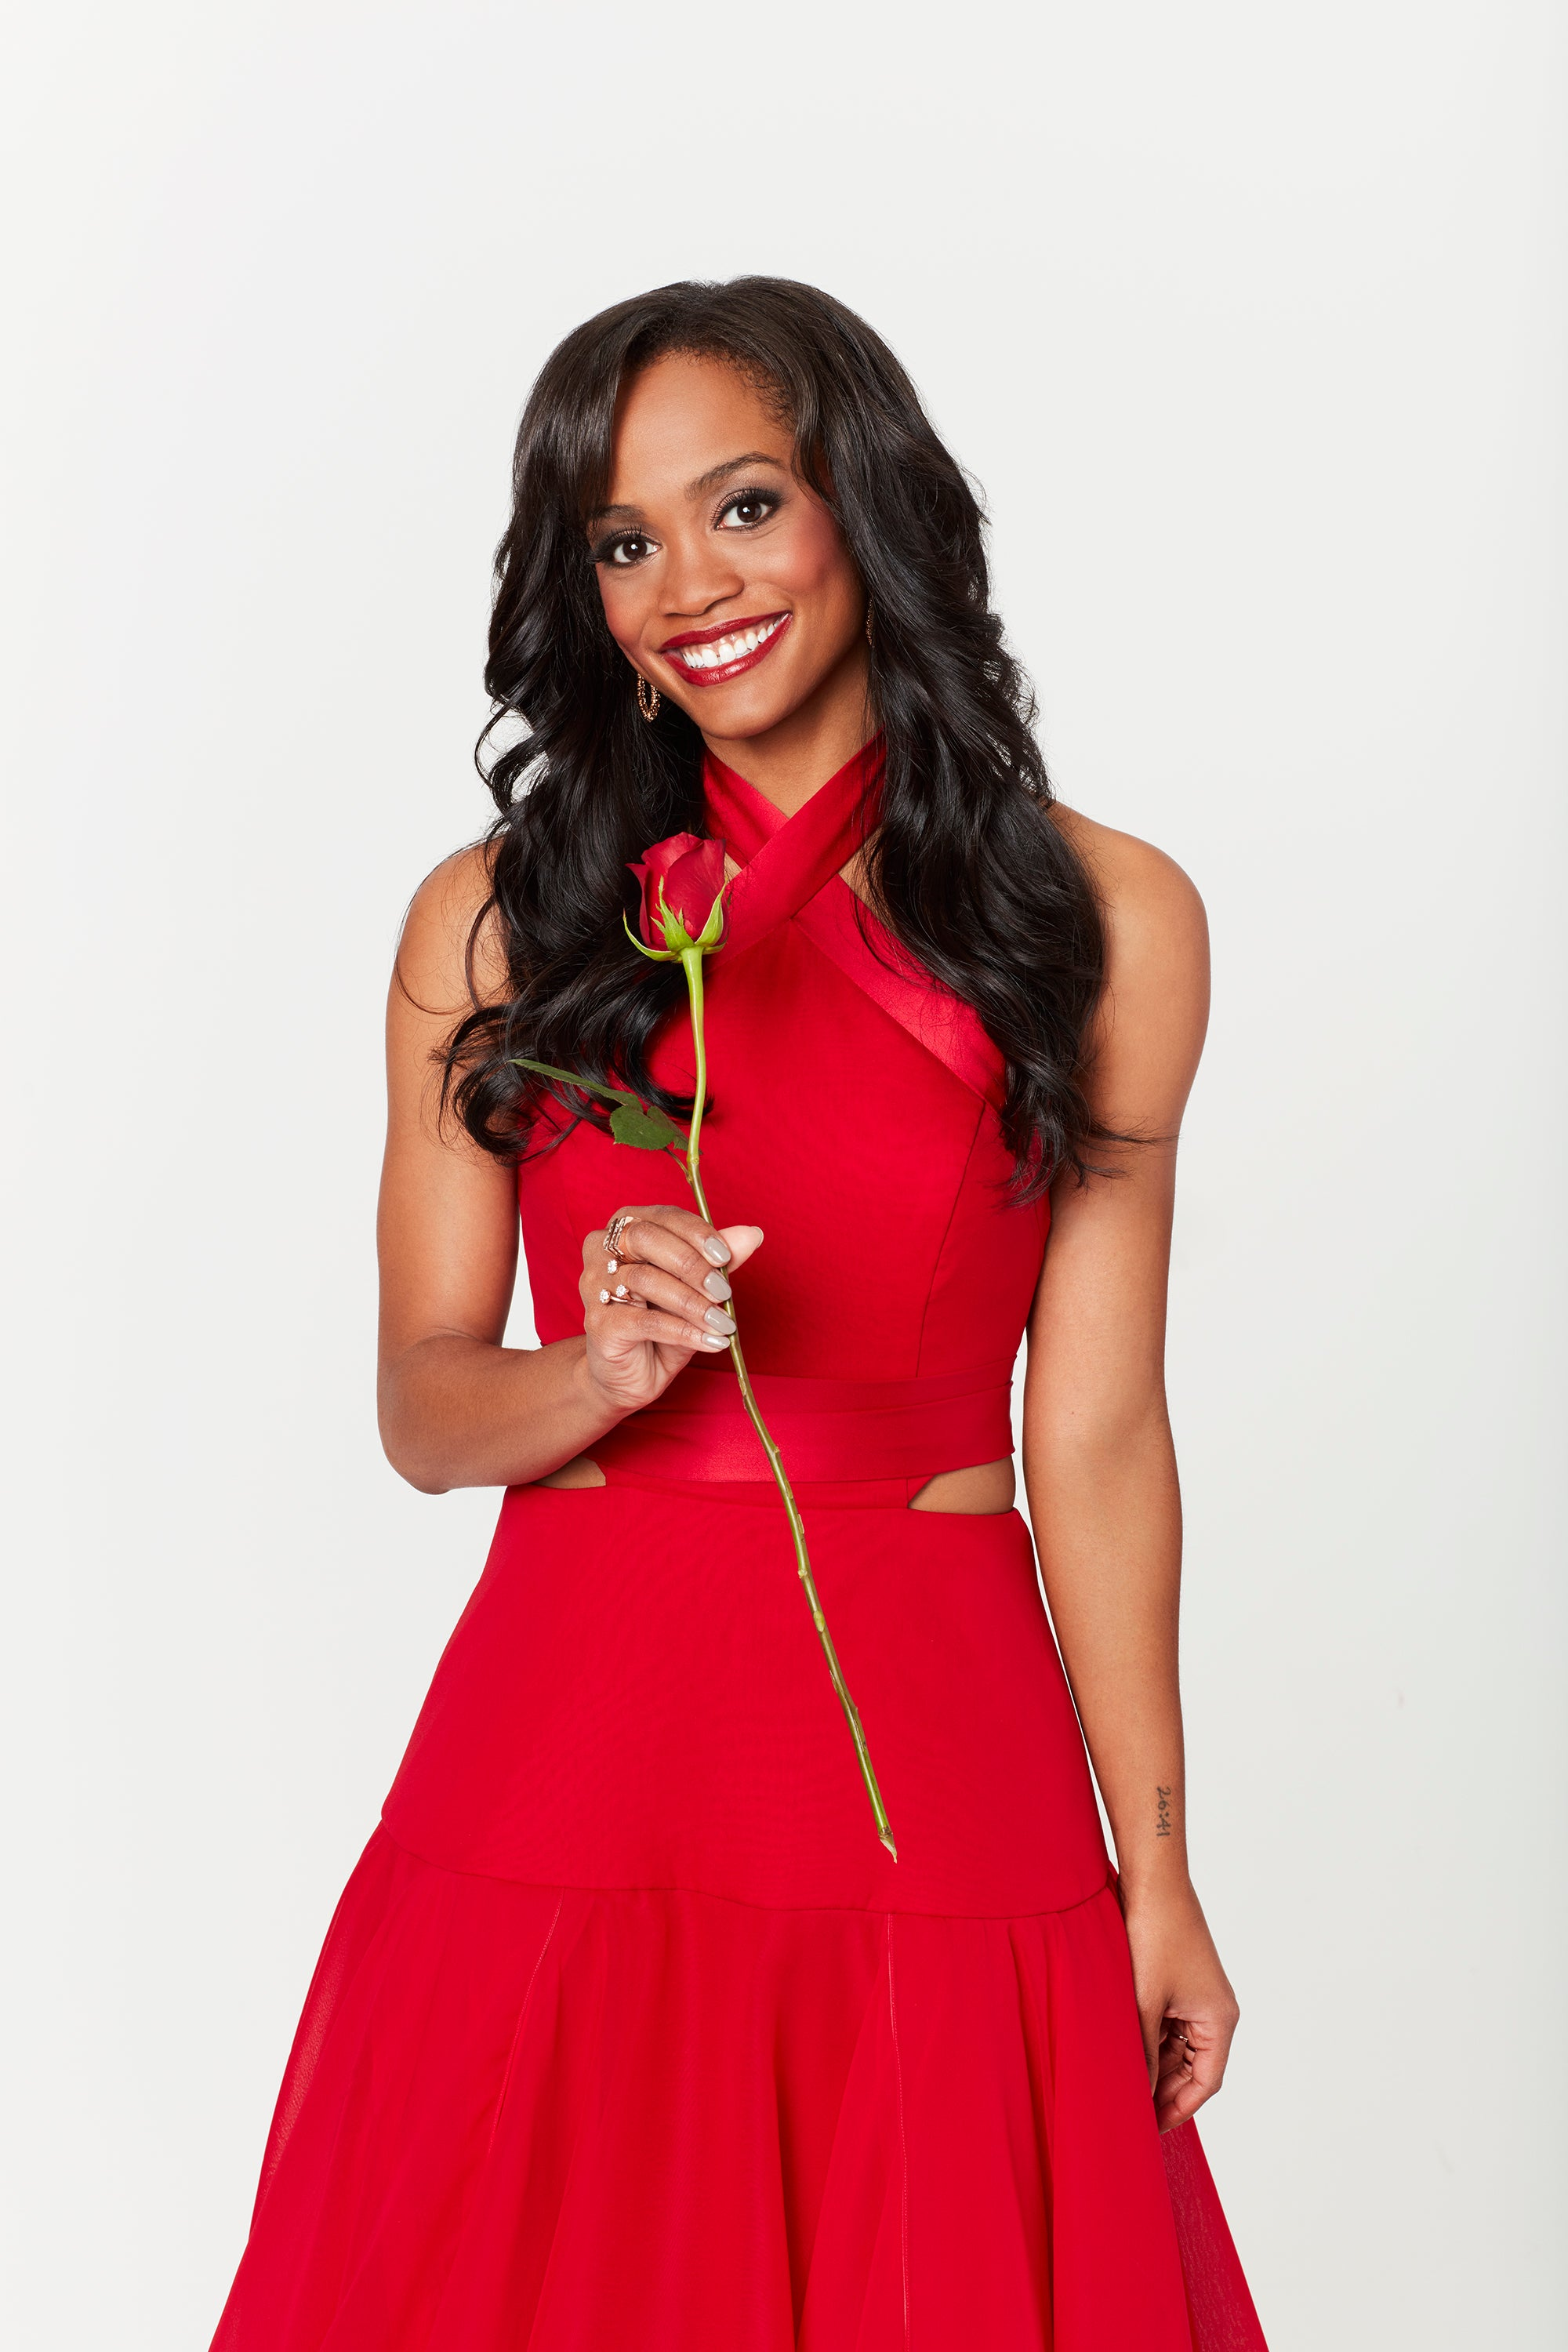 Go Off, Sis! First Black Bachelorette Rachel Lindsay Feels She Was Robbed Of Her TV Happy Ending and We Agree